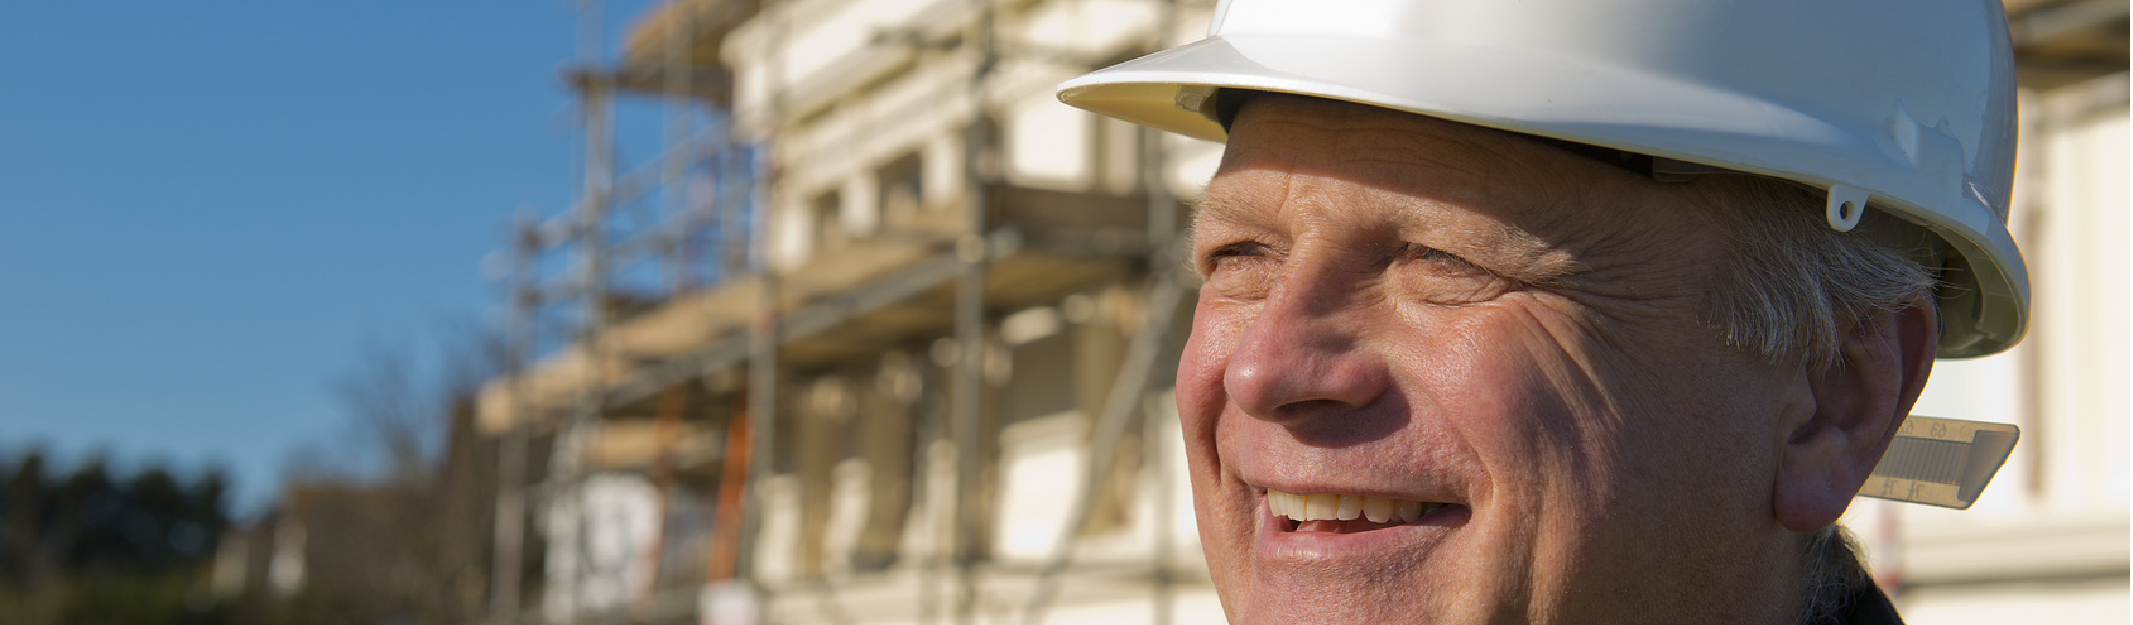 improve health and safety training -  construction worker